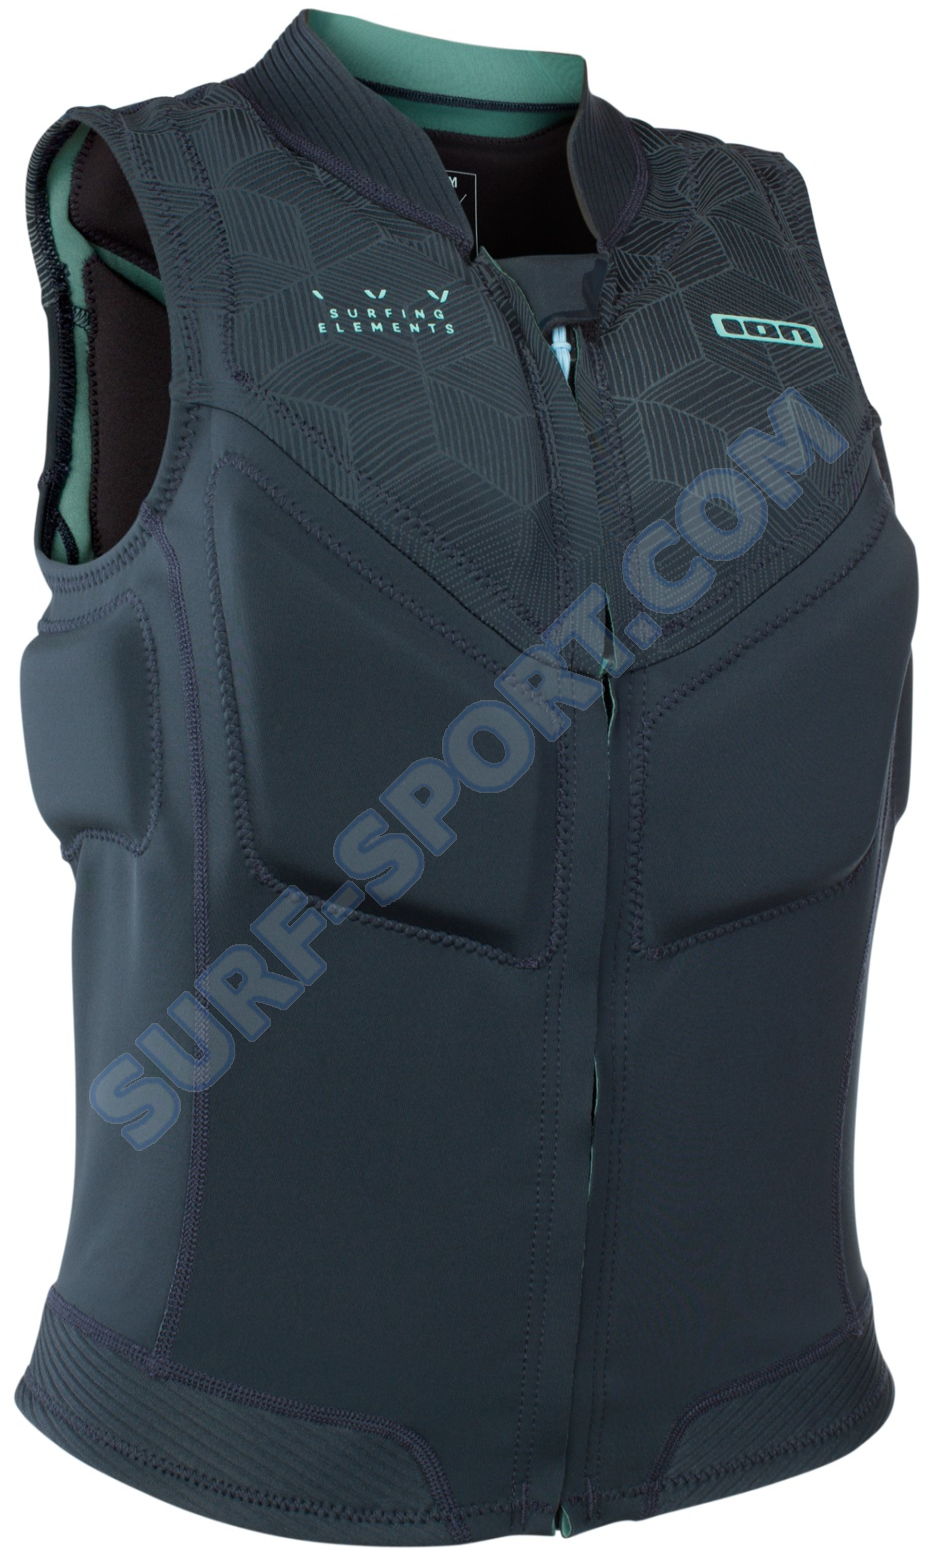 48903-4169_ion ivy vest dark blue-2019.png